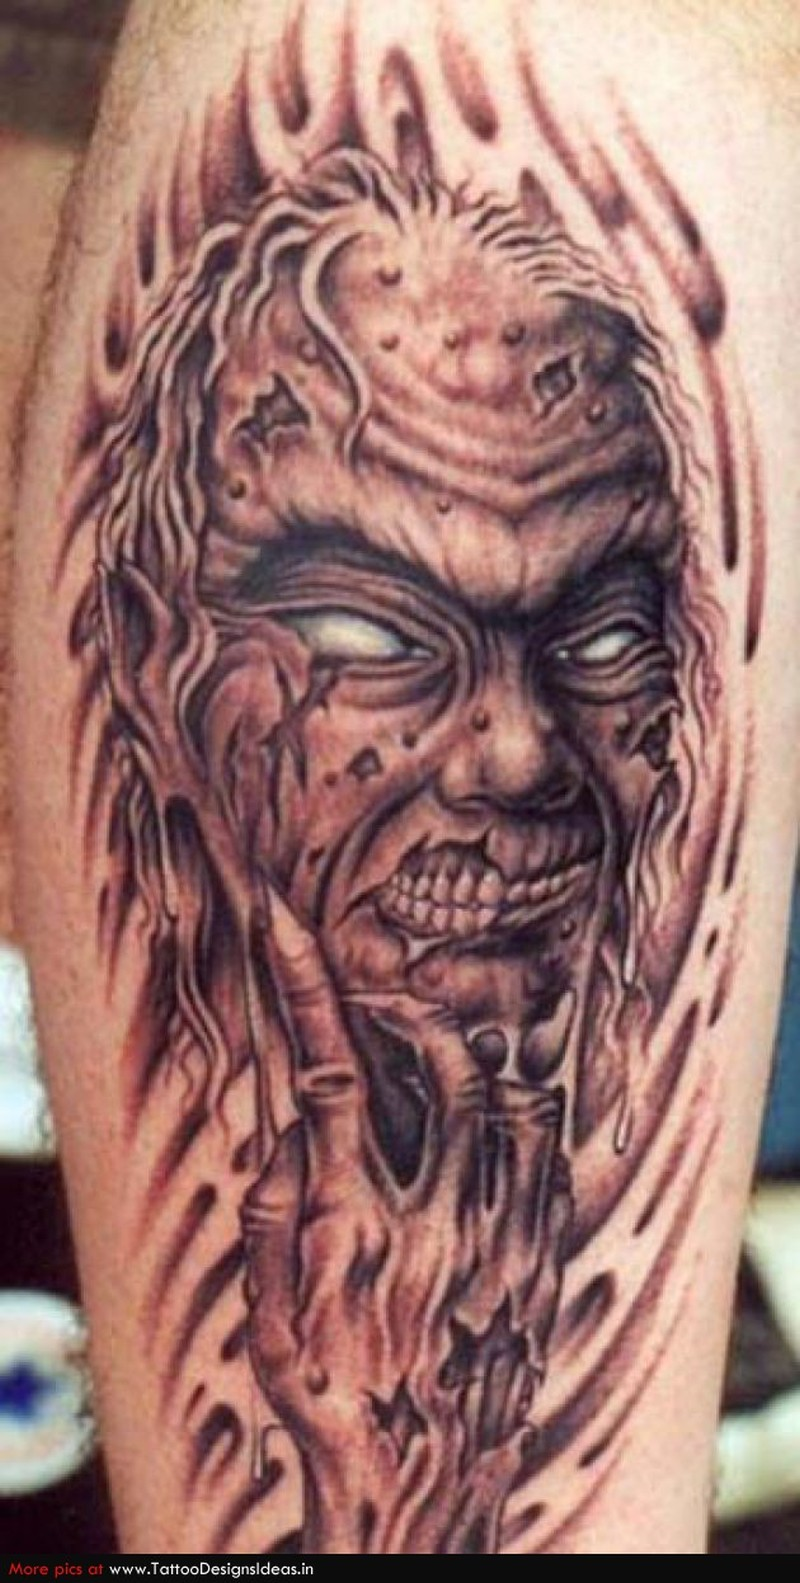 Demon devil monster horror tattoo design